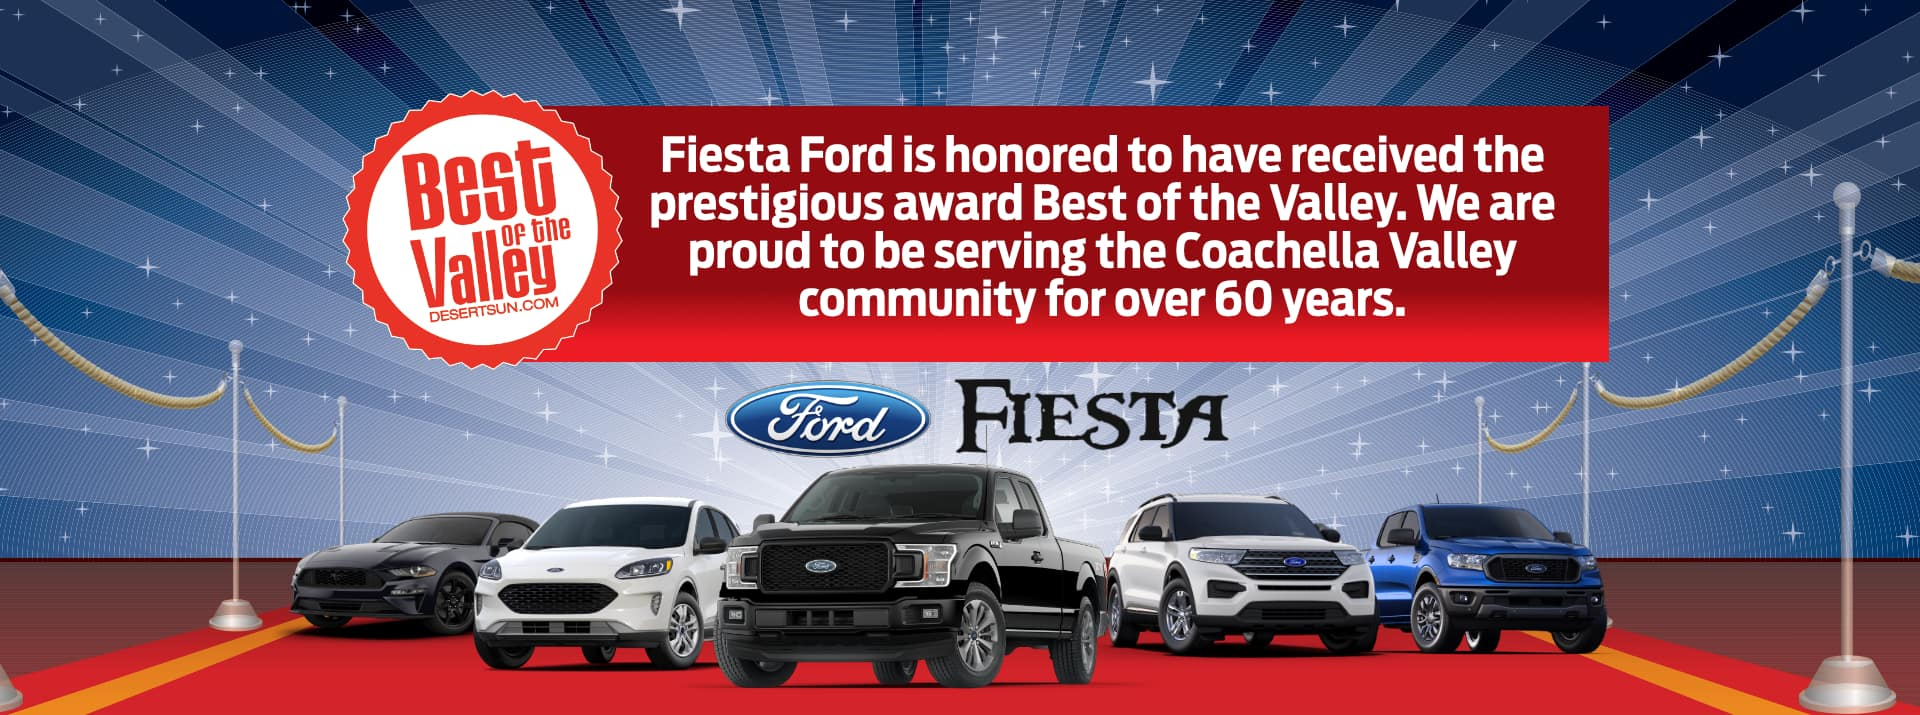 Revised_January-2021 Best Of Valley Fiesta FORD